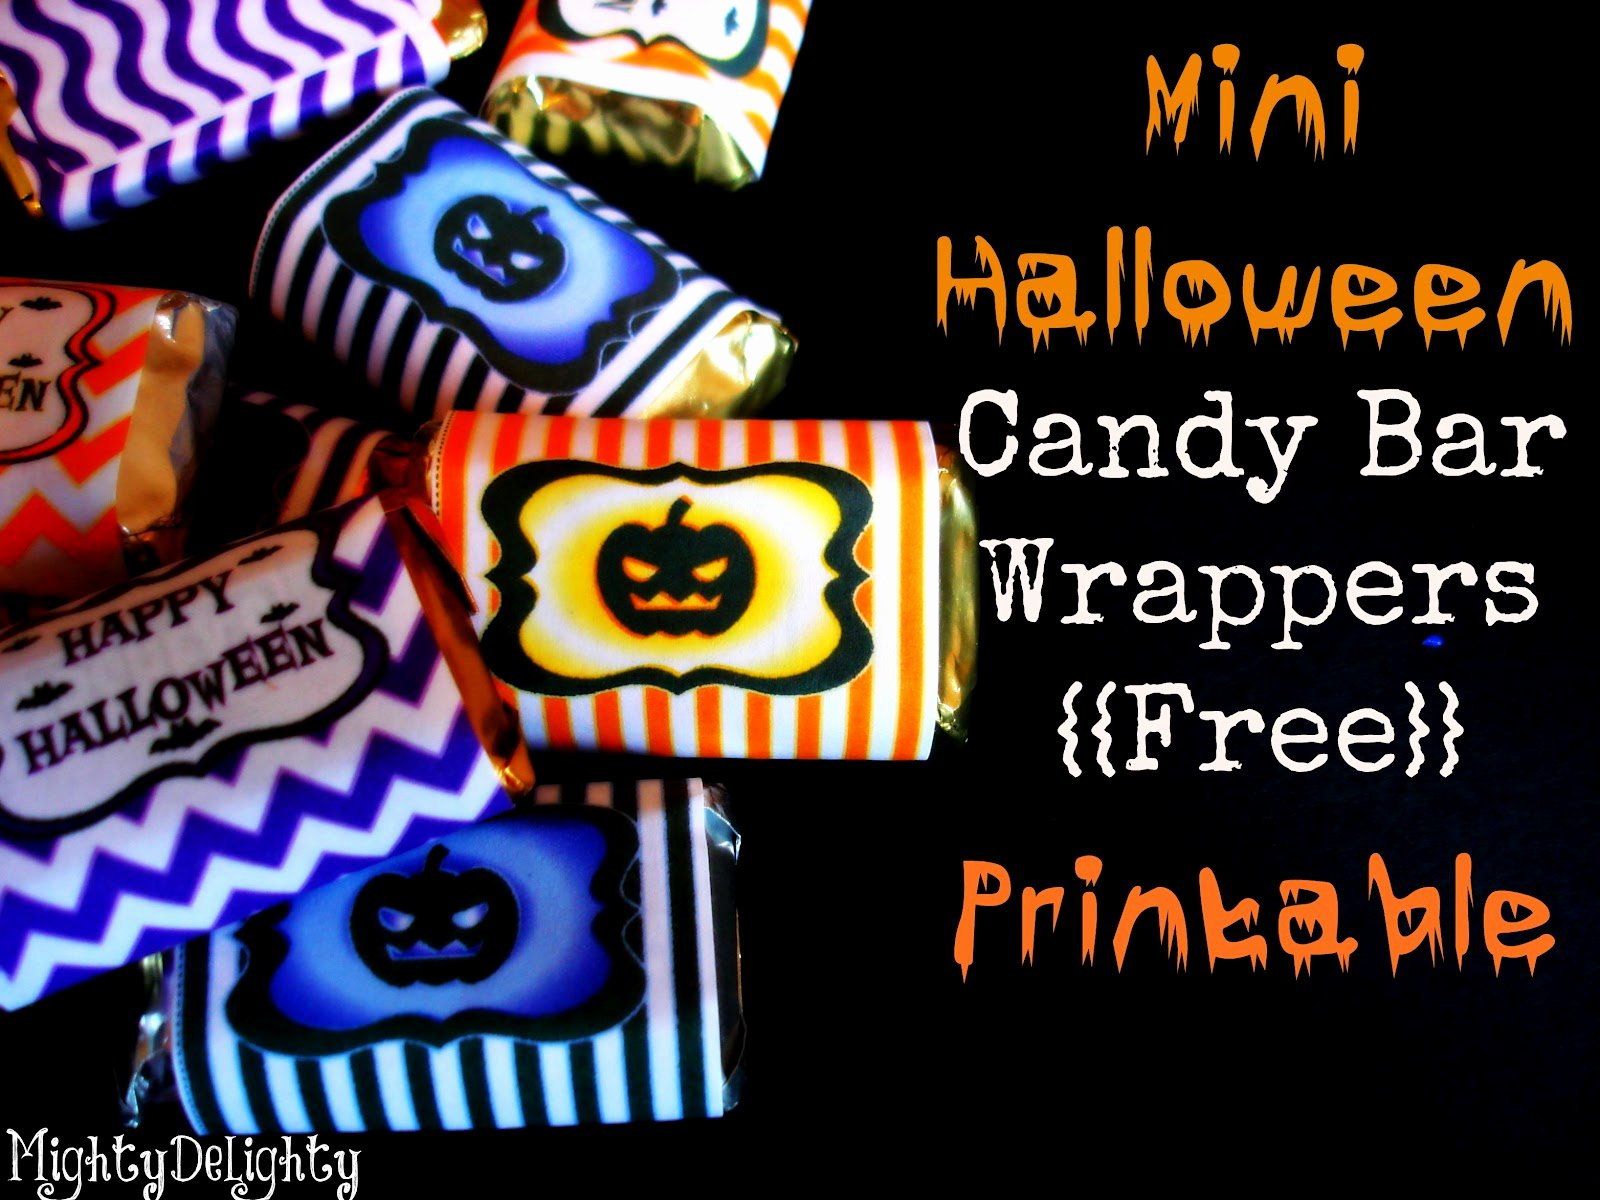 Free Candy Bar Wrappers Lovely Mighty Delighty Mini Halloween Candy Bar Wrappers Free